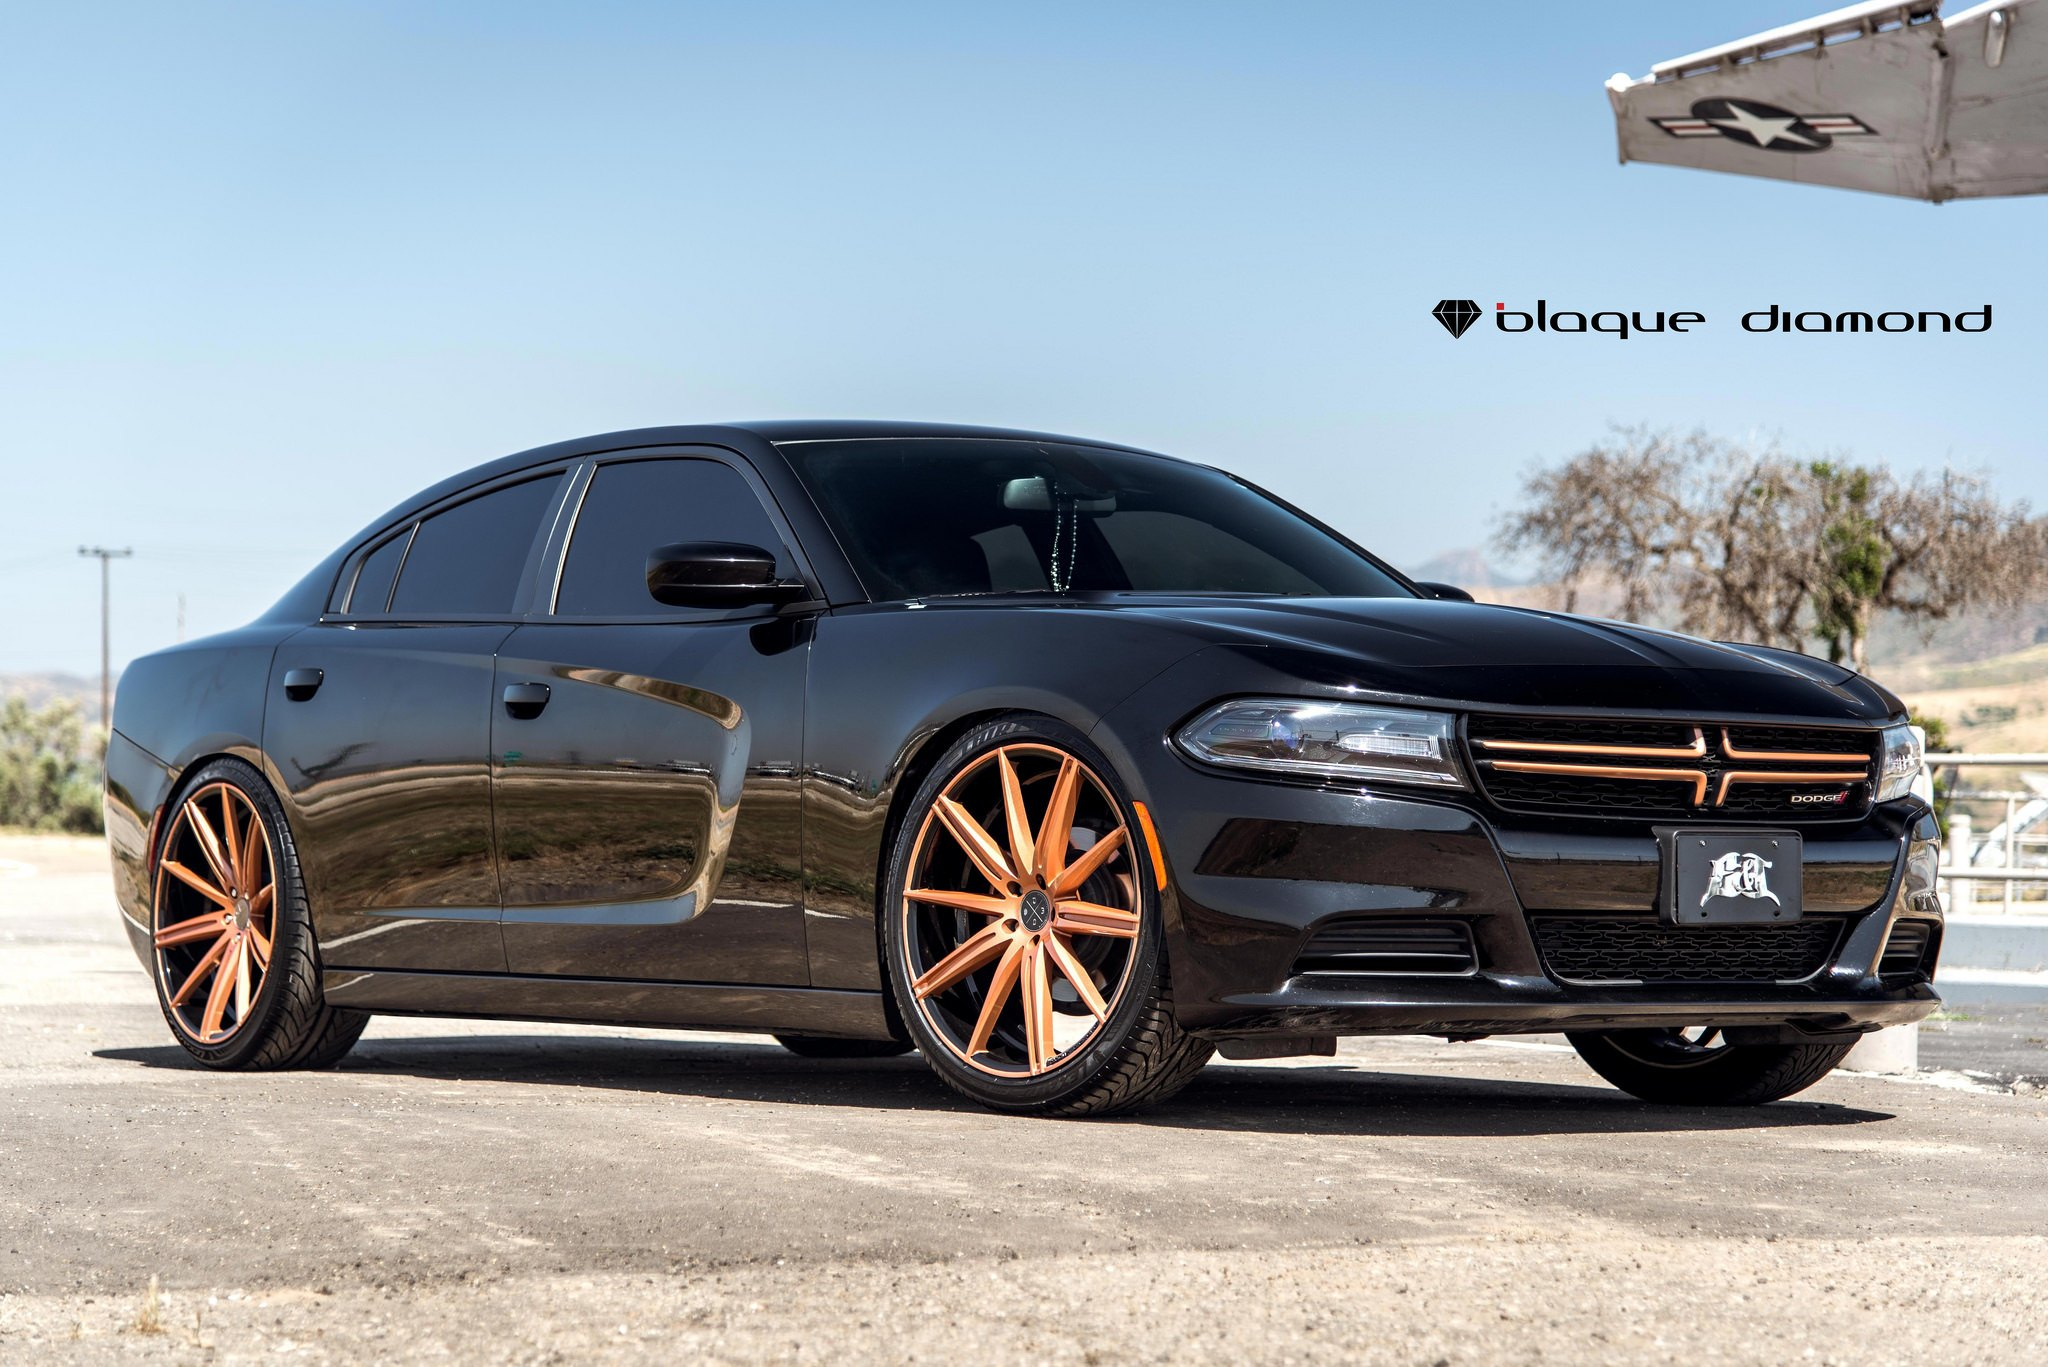 Street Fighter Dodge Charger on BD 11 Rims - Photo by Black Diamond